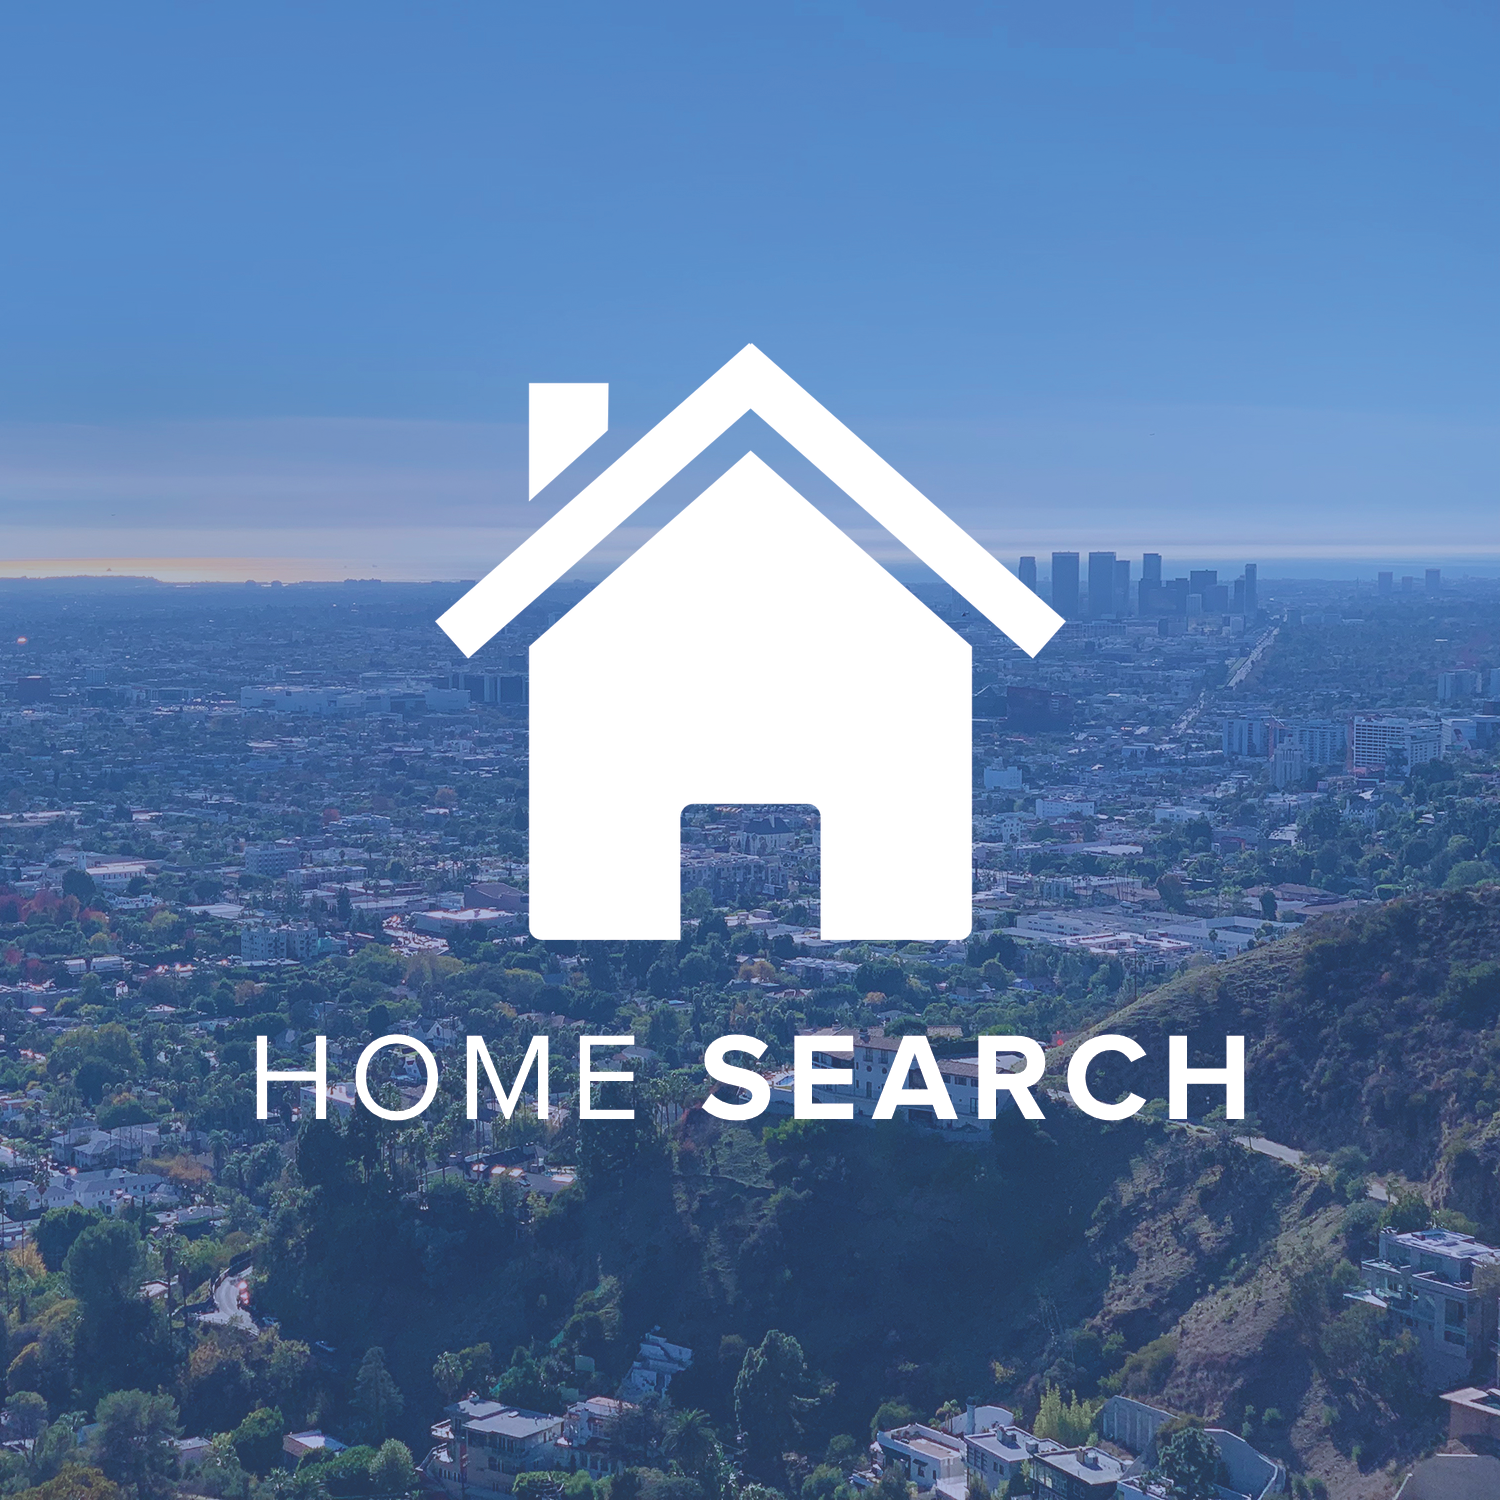 HOME SEARCH - RHODES LEAD HOME